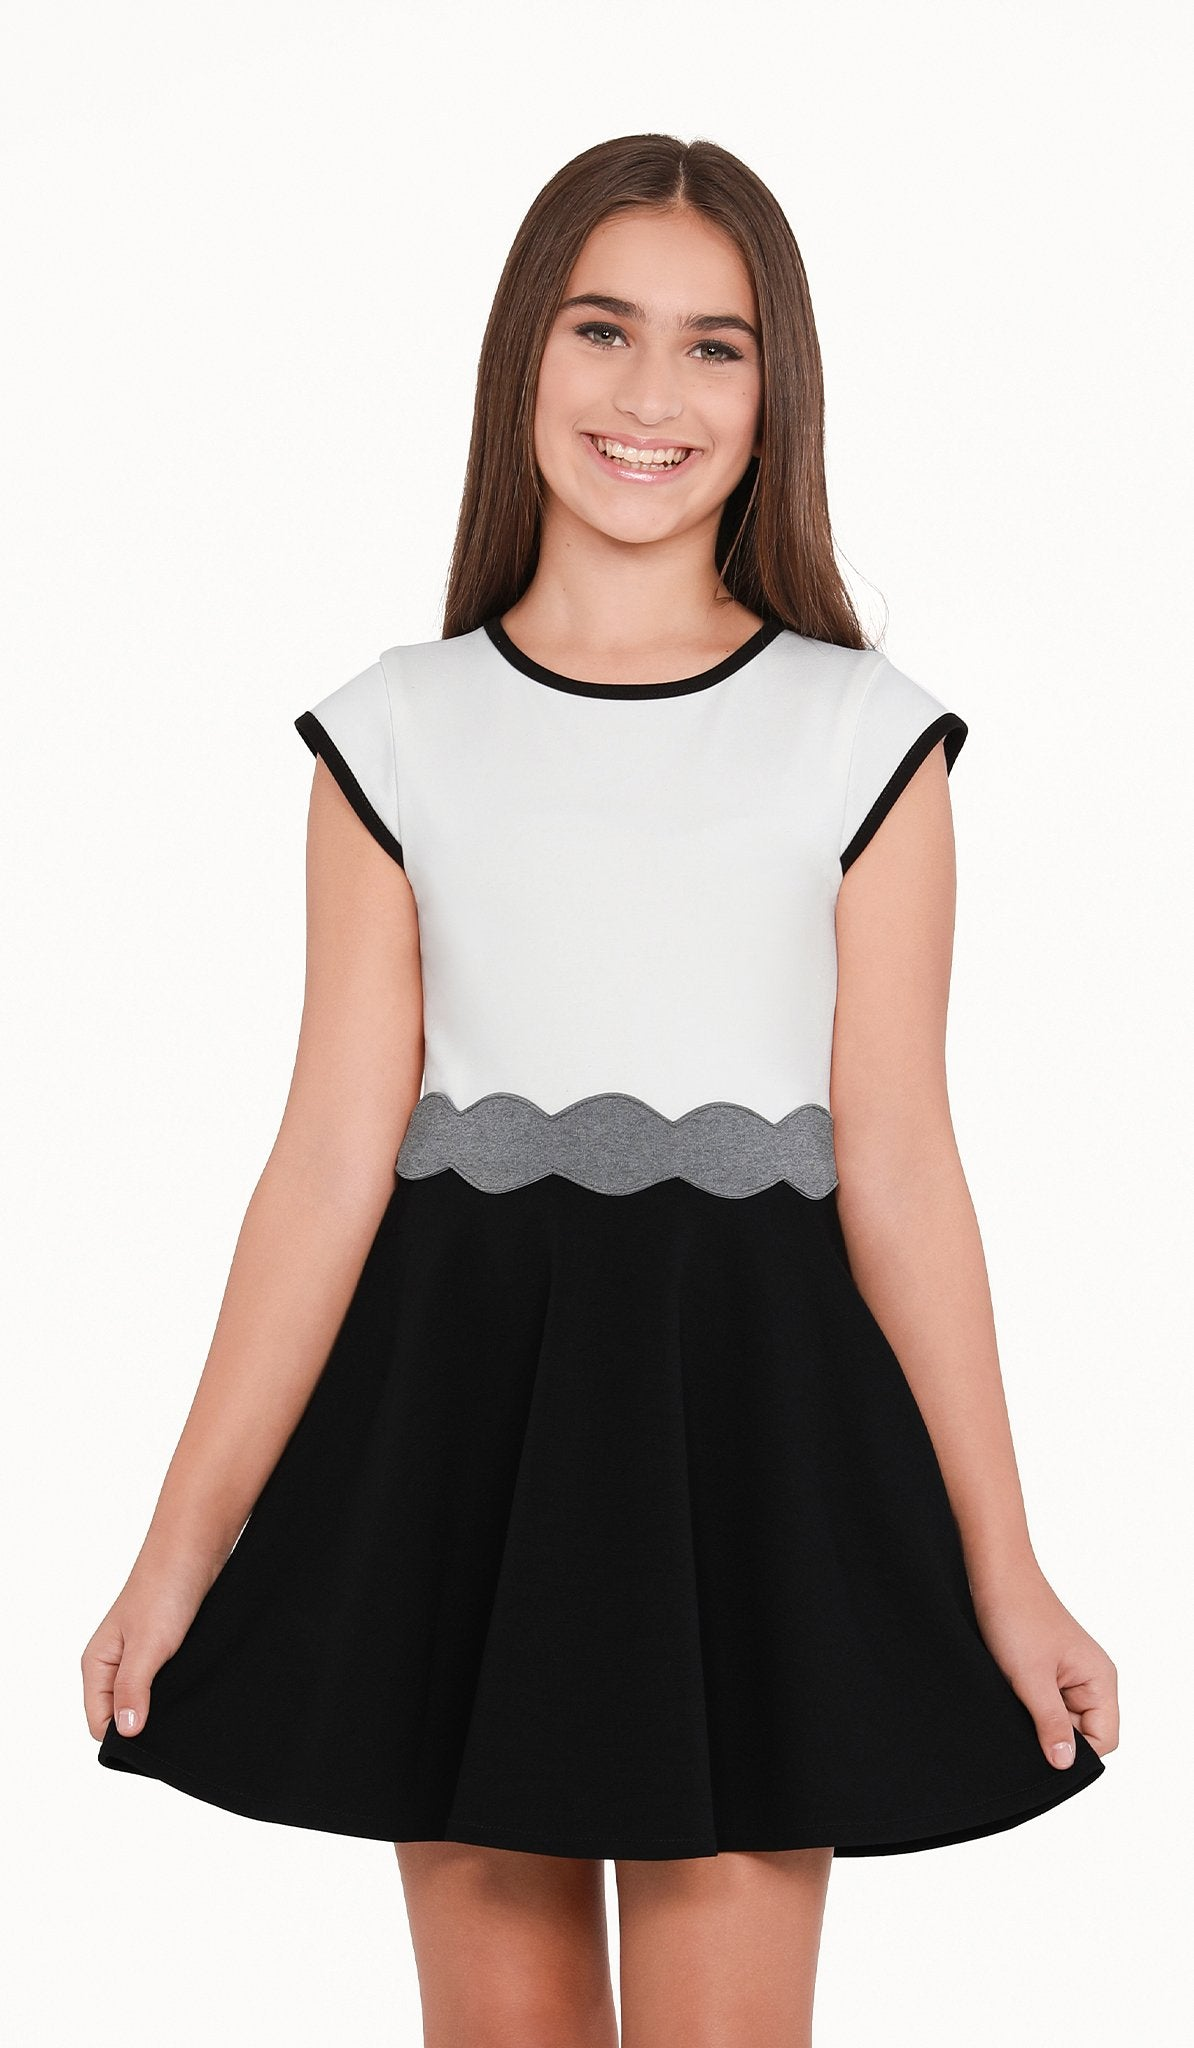 Sally Miller - The Shelby Dress - Ivory and black super ponti stretch knit cap sleeve fit and flare dress with waist trim detail